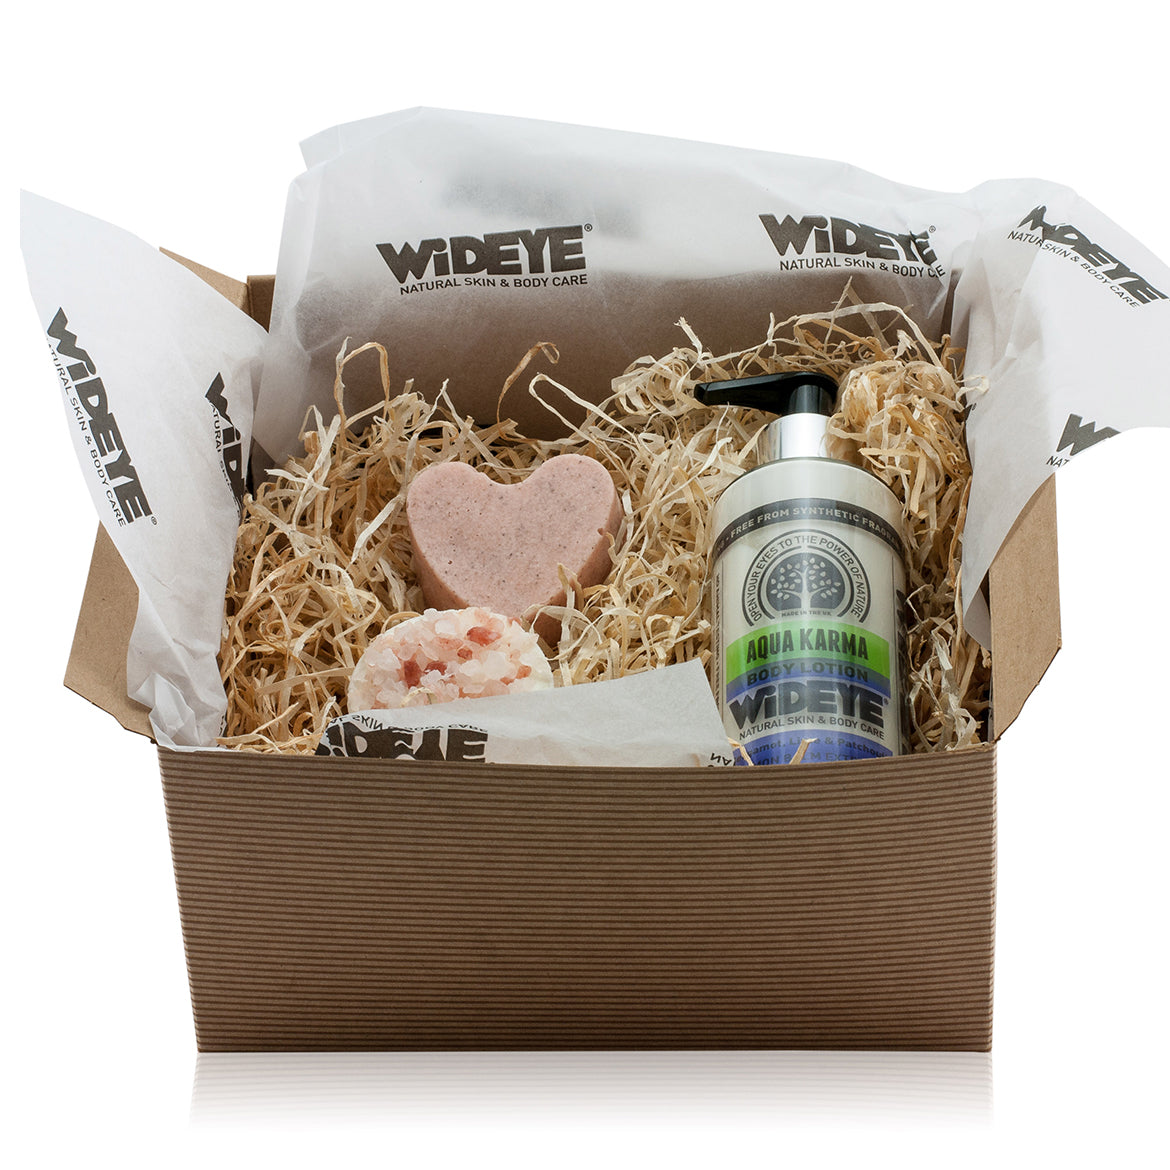 Natural vegan skincare gift box with body lotion, body scrub and bath melt by WiDEYE.